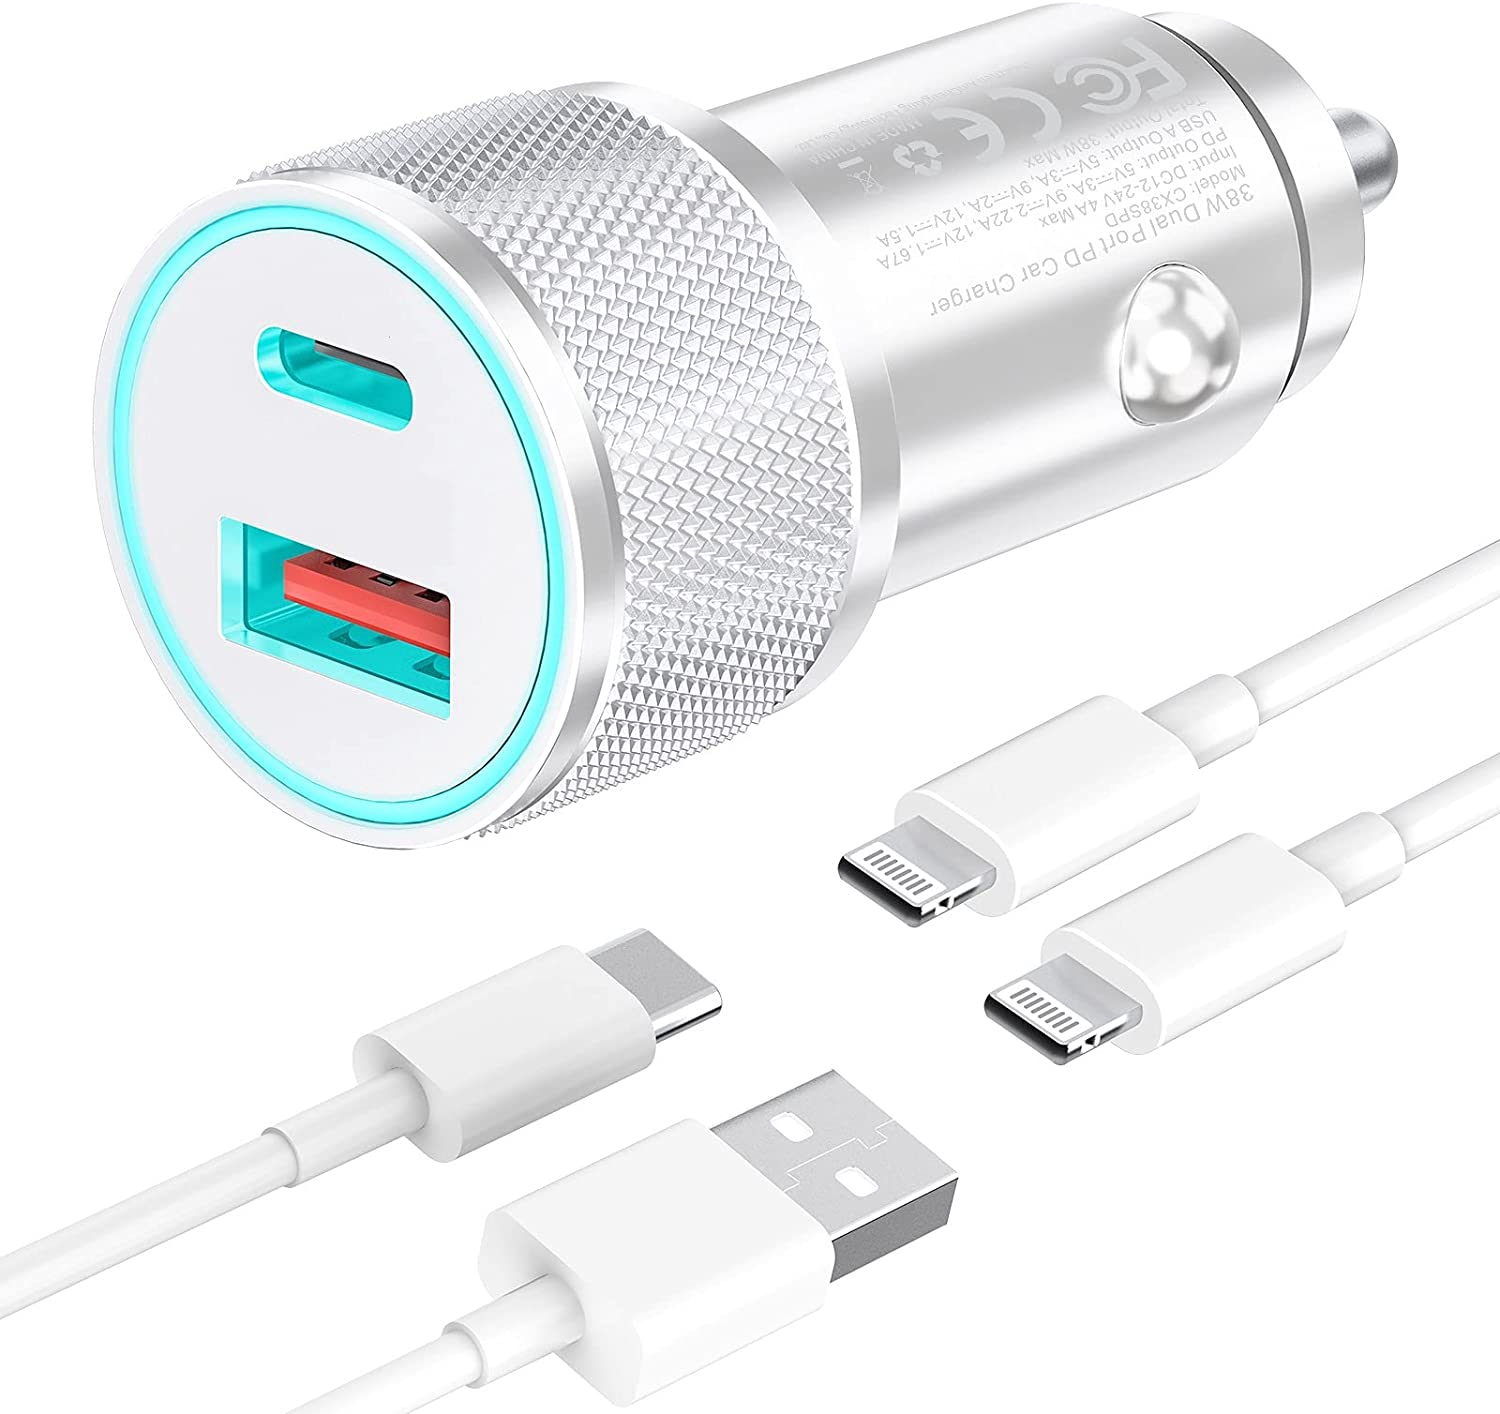 esbeecables Car Charger, [Apple MFi Certified] 38W iPhone Fast Charge, PD/QC3.0 Type C USB Dual Port Metal Mini Cigarette Lighter Car Adapter with 2 Pack Lightning Cable, for iPhone/iPad/Airpods